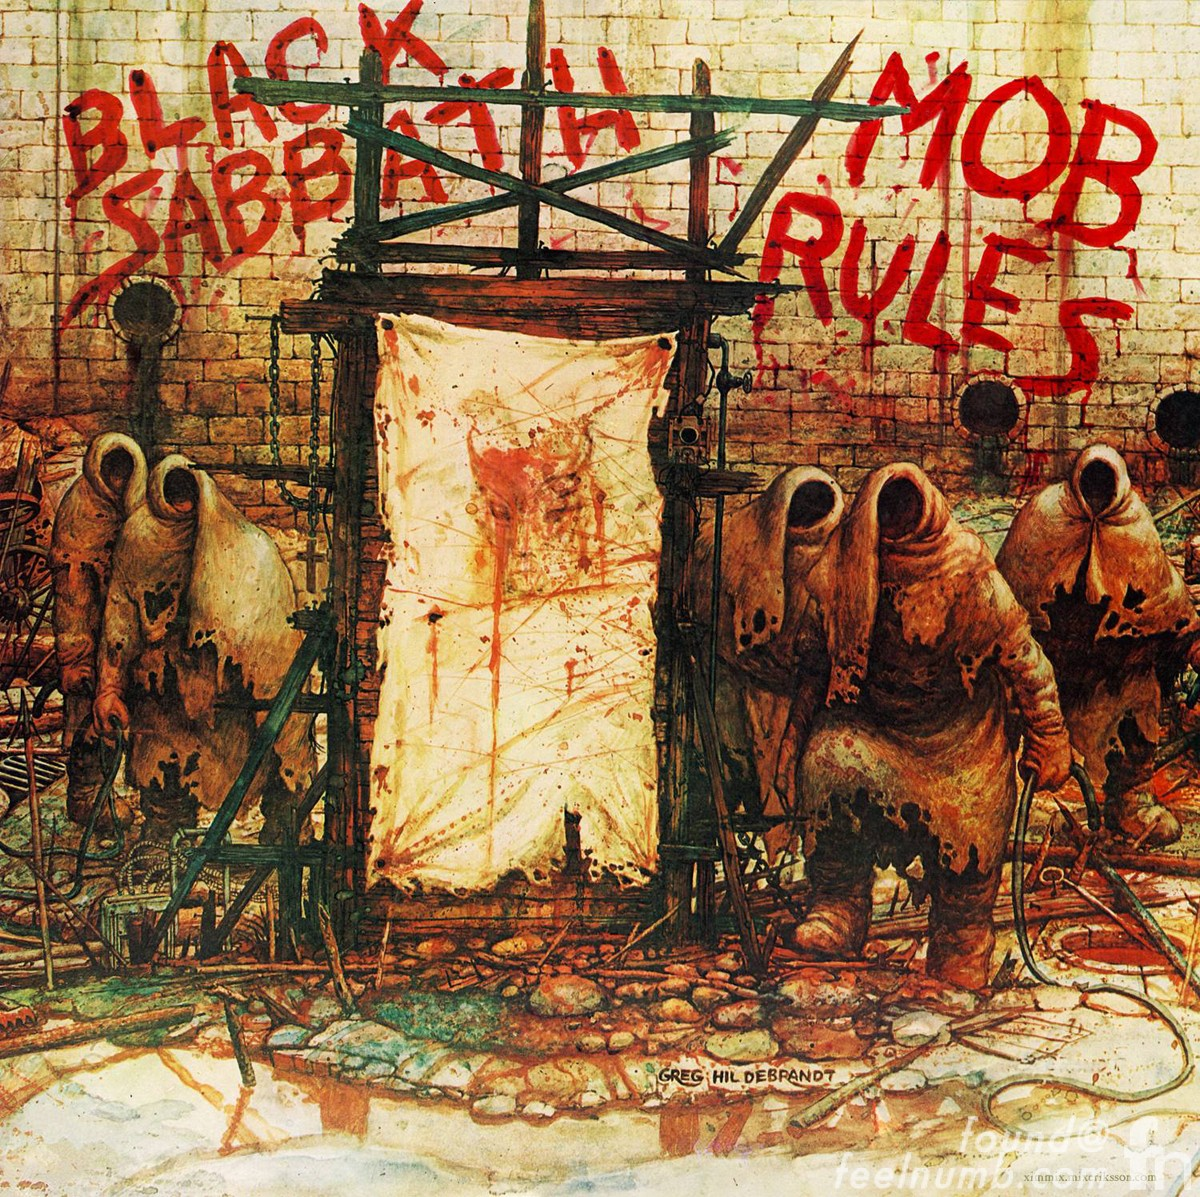 Black Sabbath Mob Rules Kill Ozzy Album Cover Gerg Hildenbrandt